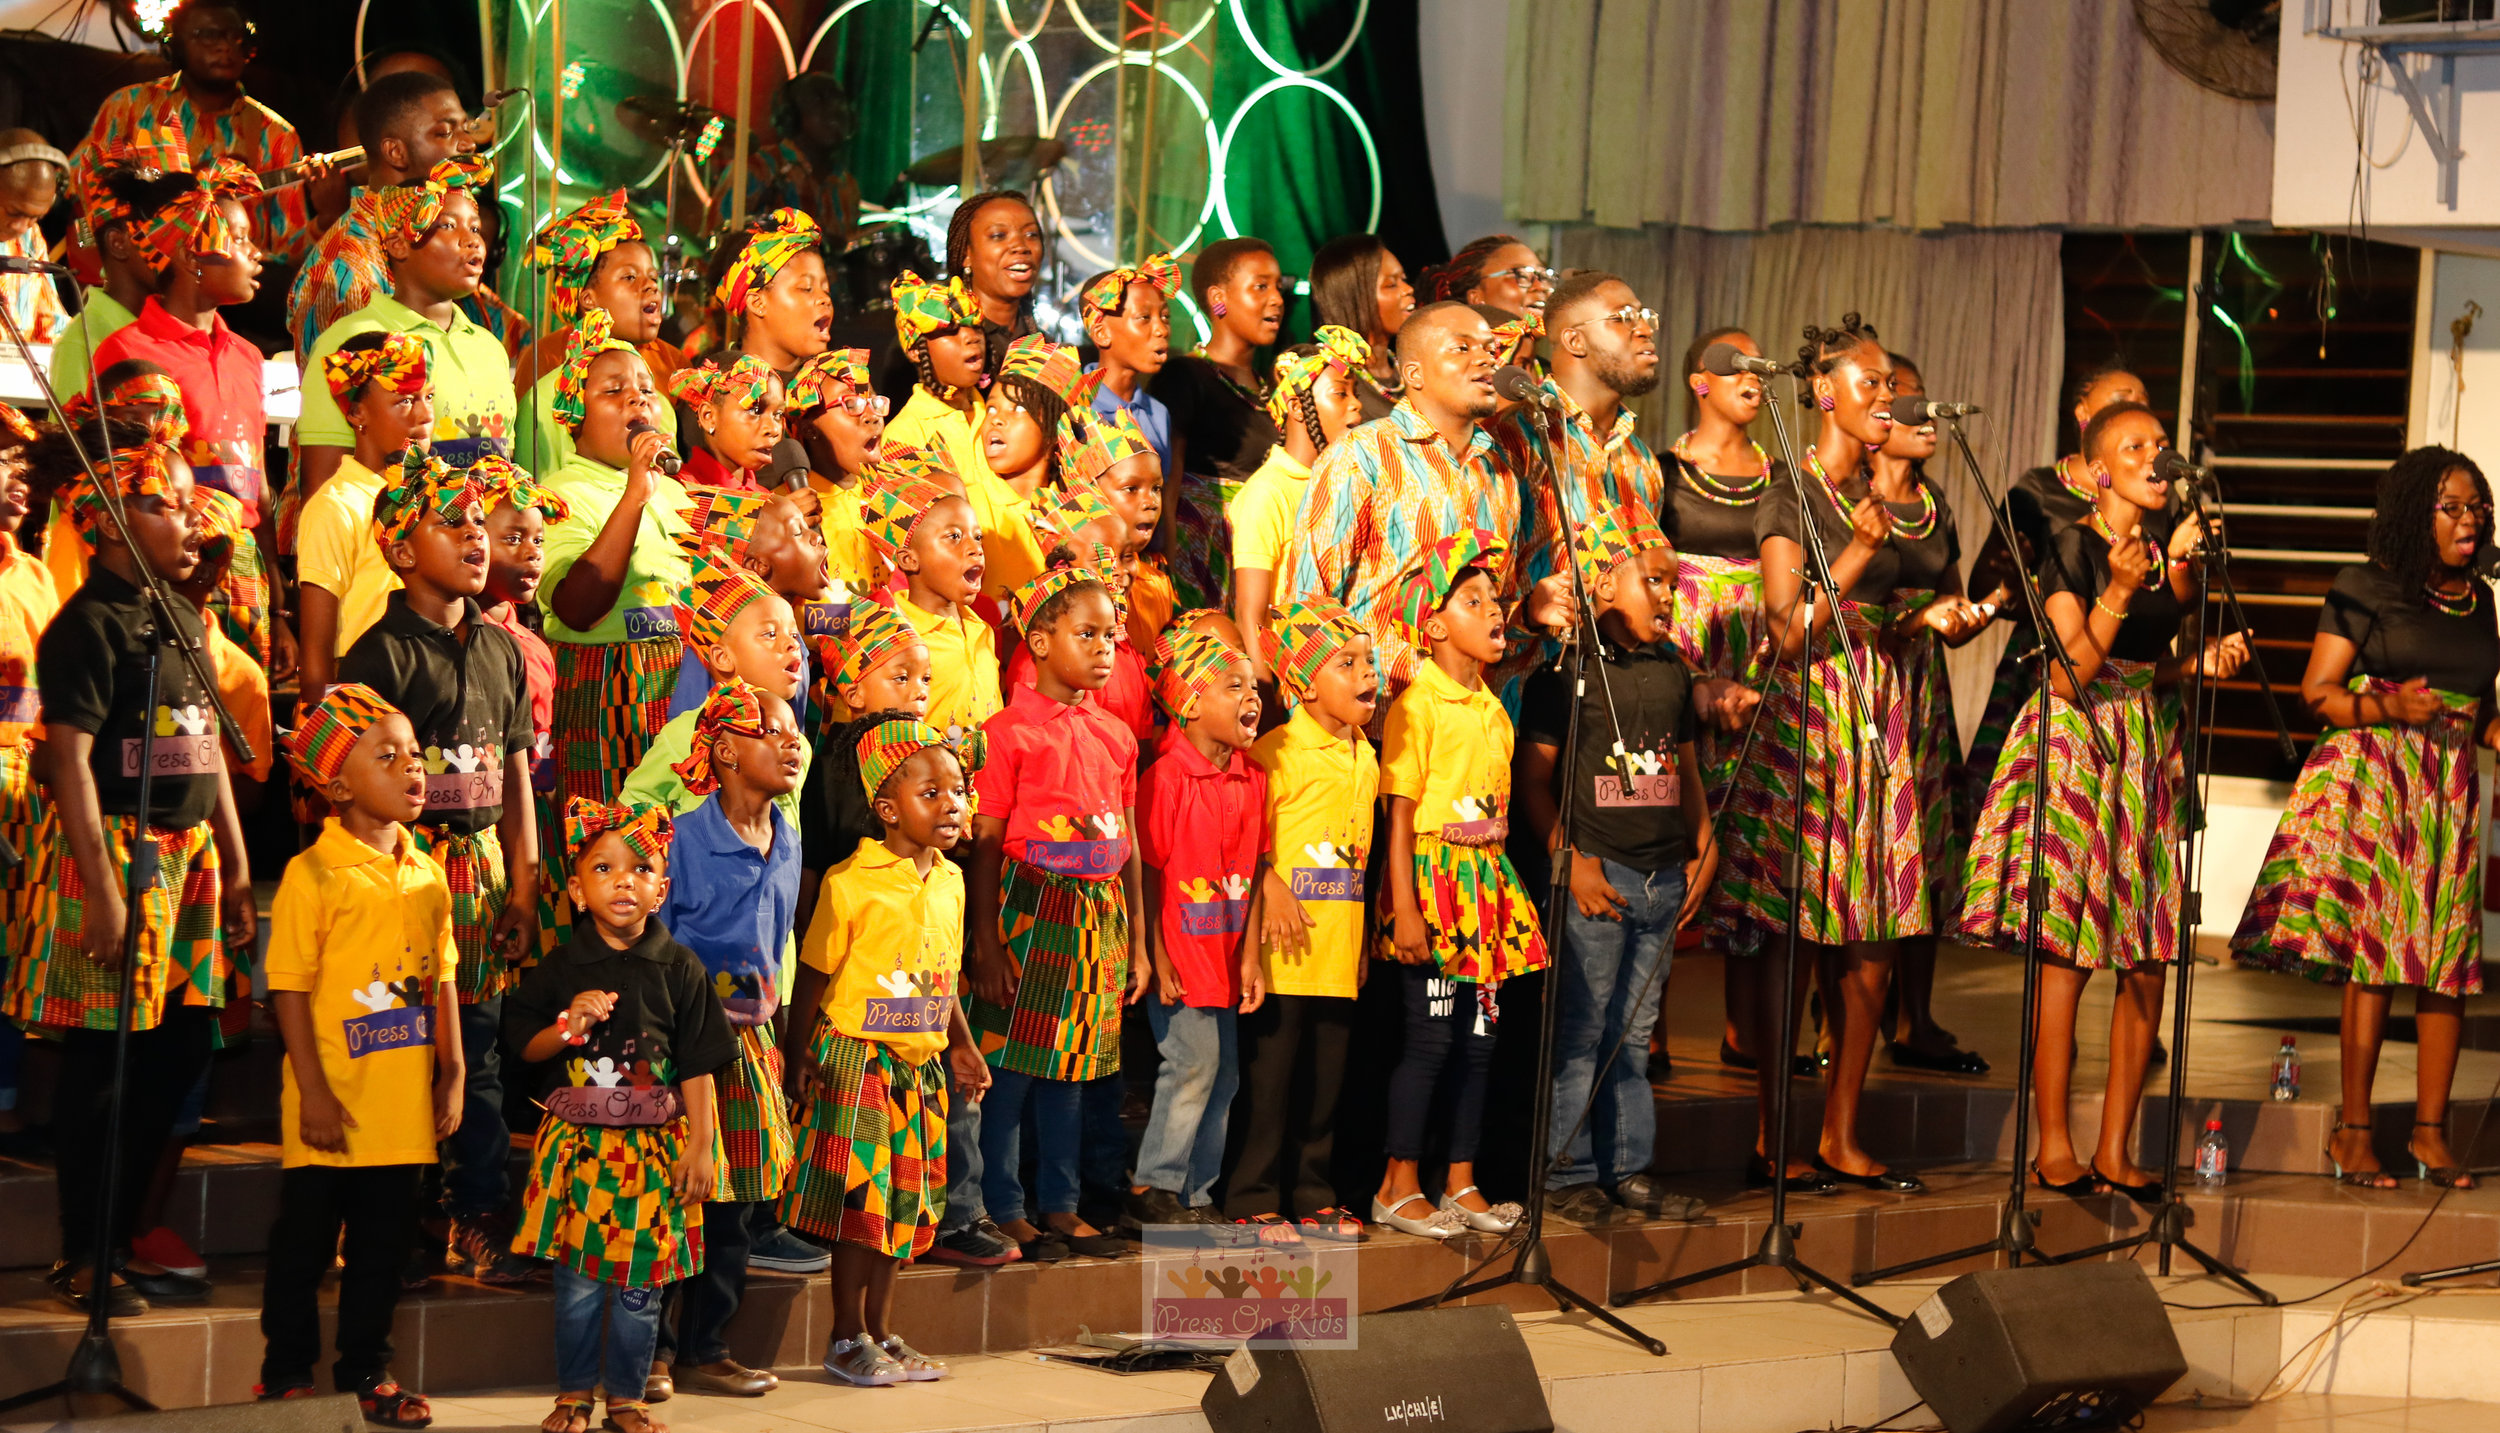 Press On Kids singing with the Legon Interdenominational Choir (LIC Choir) at their 2017 musical concert